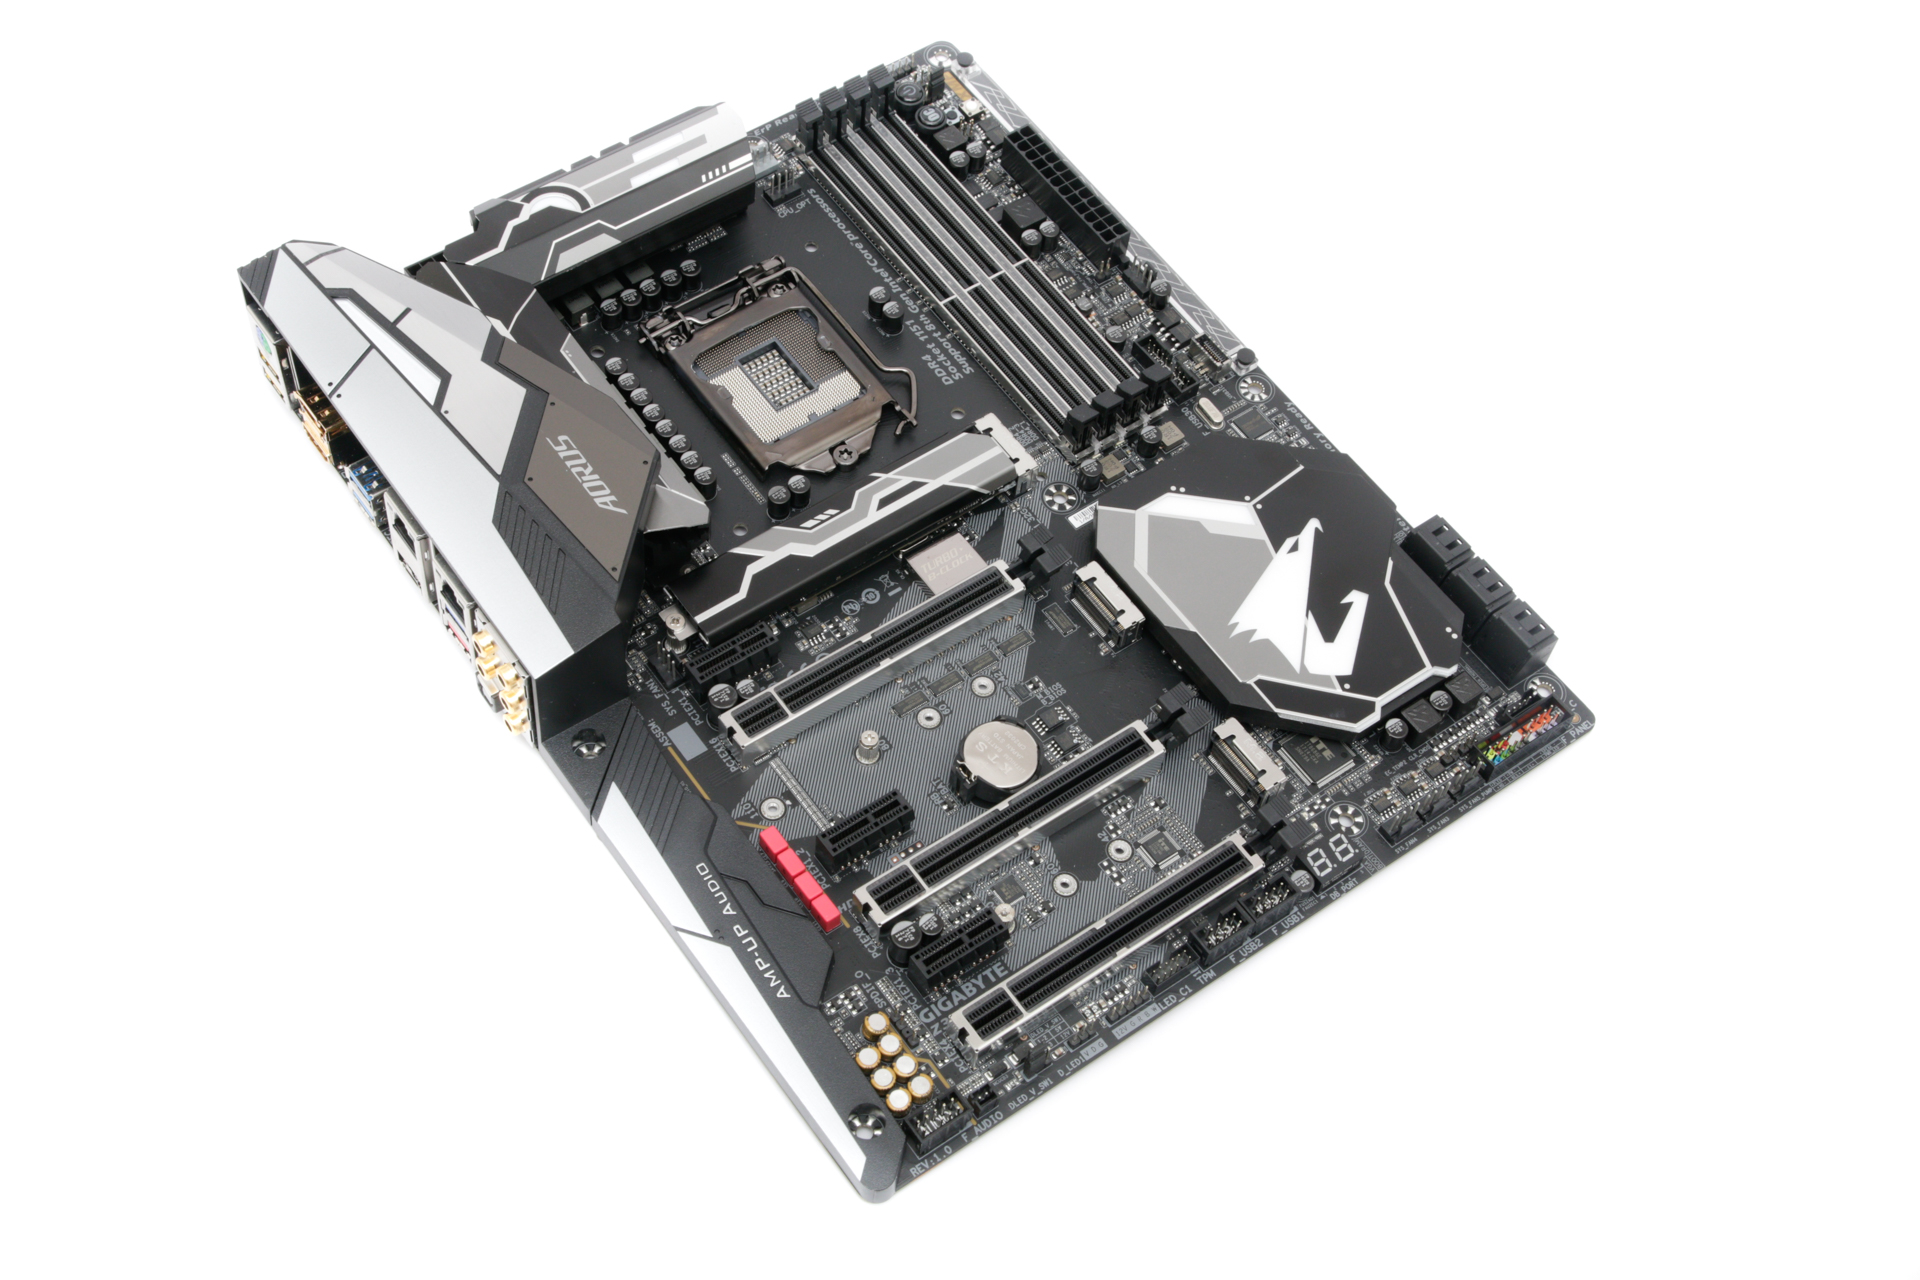 Gigabyte Z370 Aorus Gaming 7 Review | bit-tech net